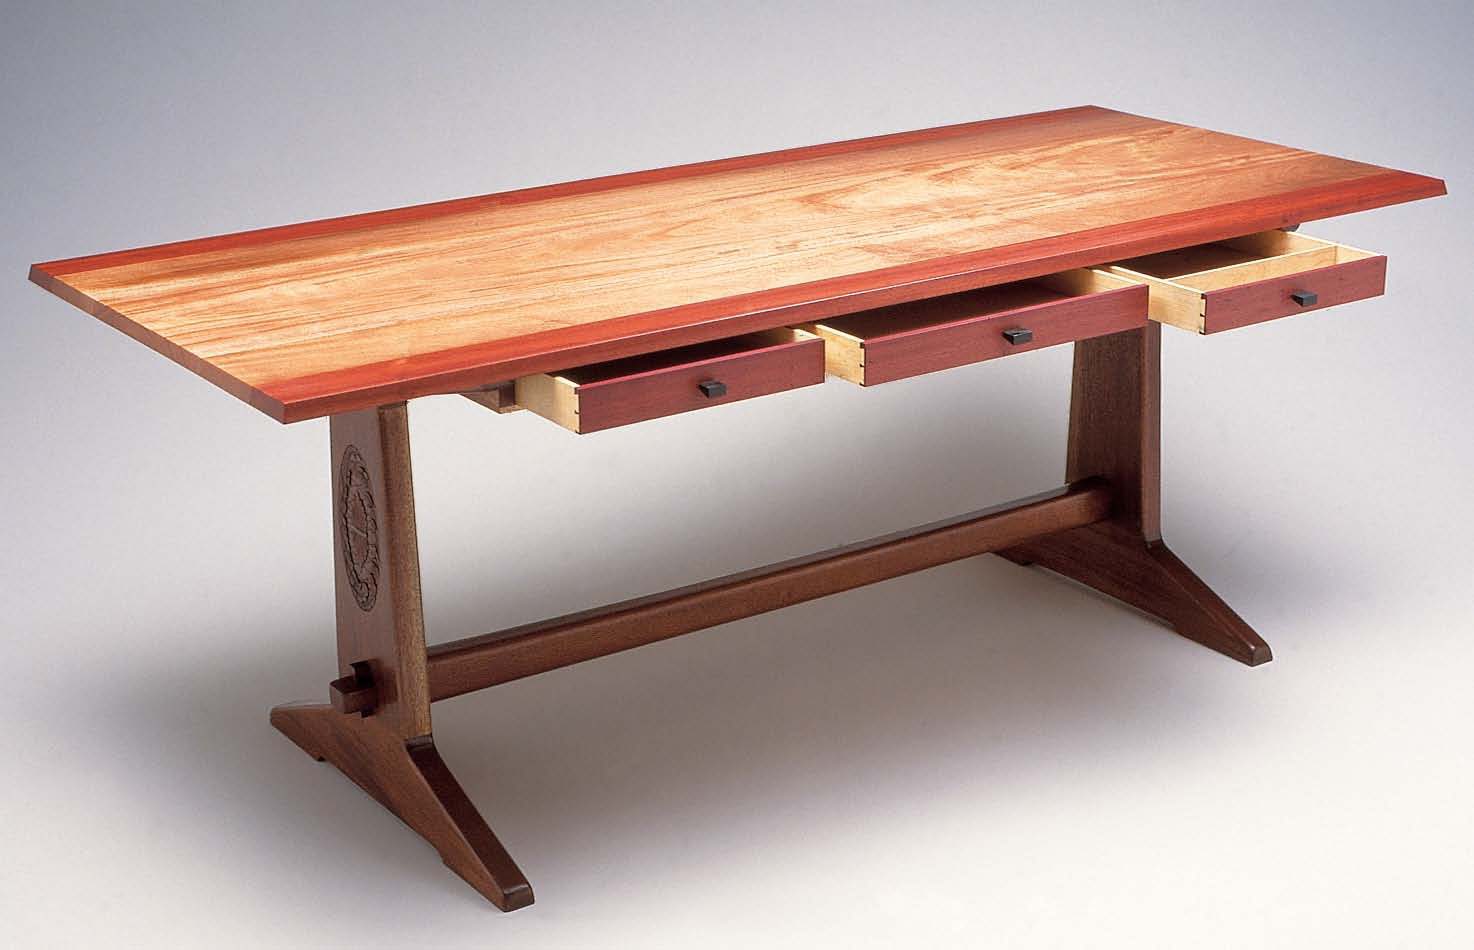 wood furniture 1. design and build a diy trestle table XPFPWUA